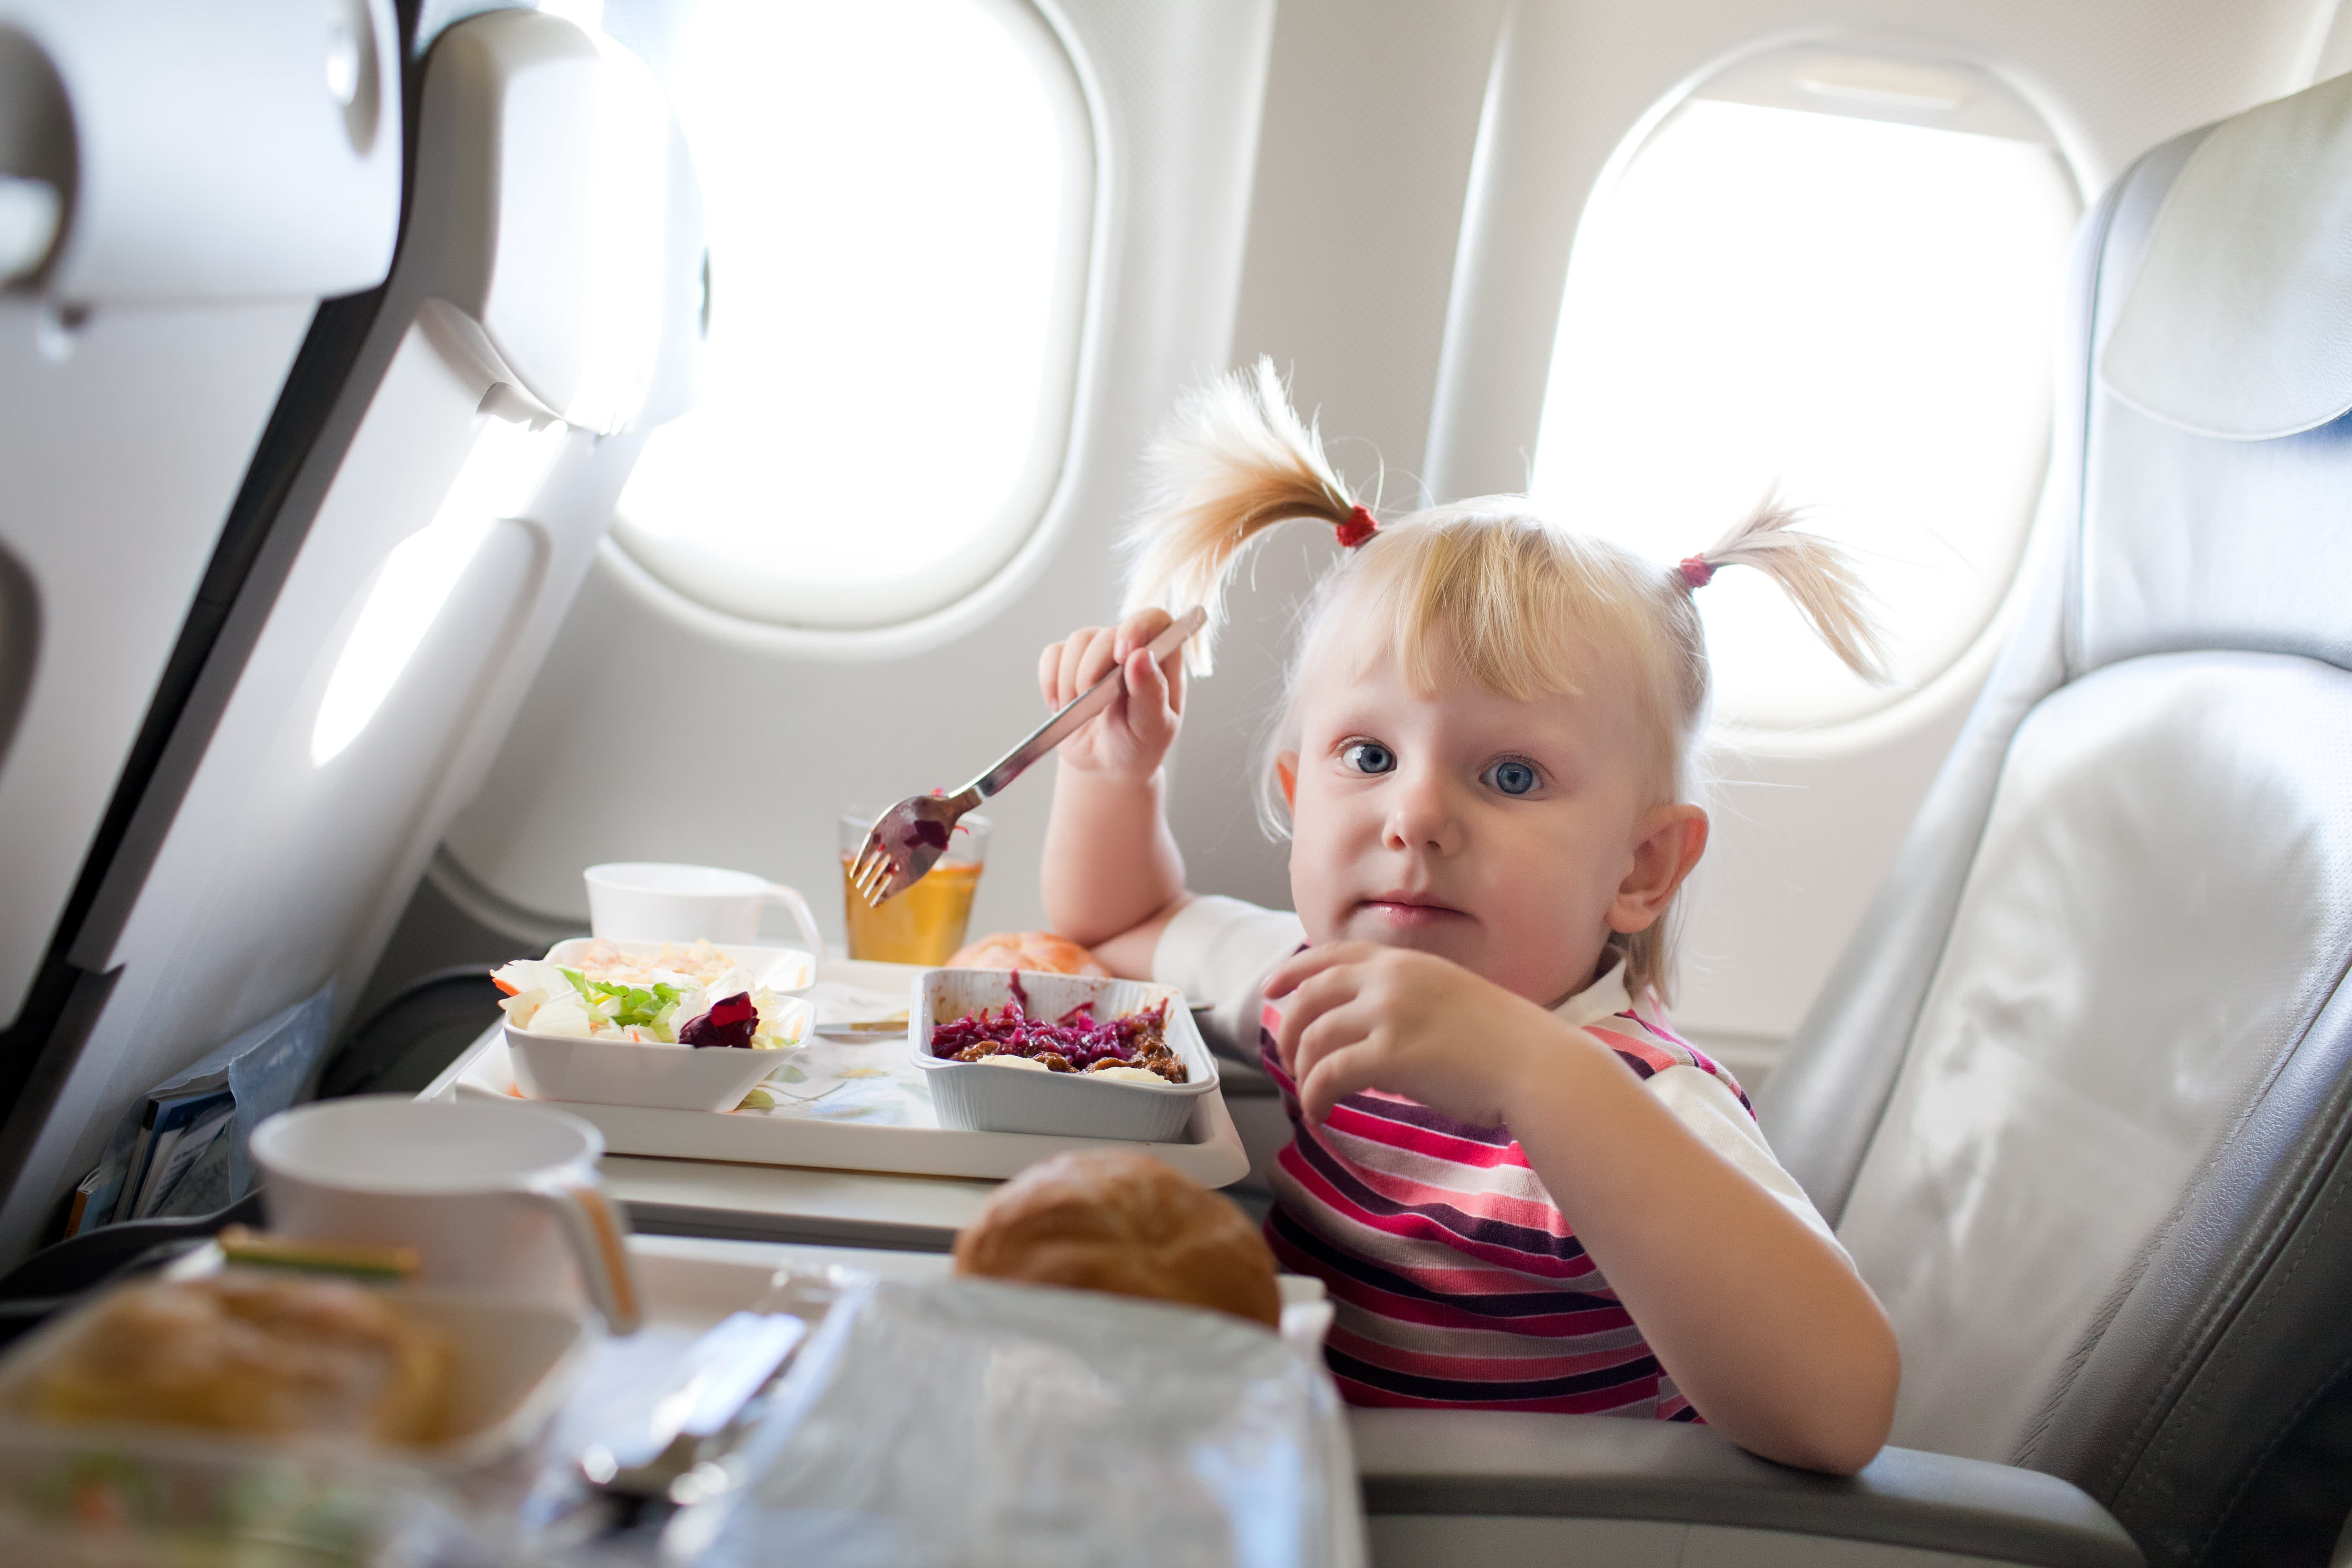 Little Girl Eating on an Airplane